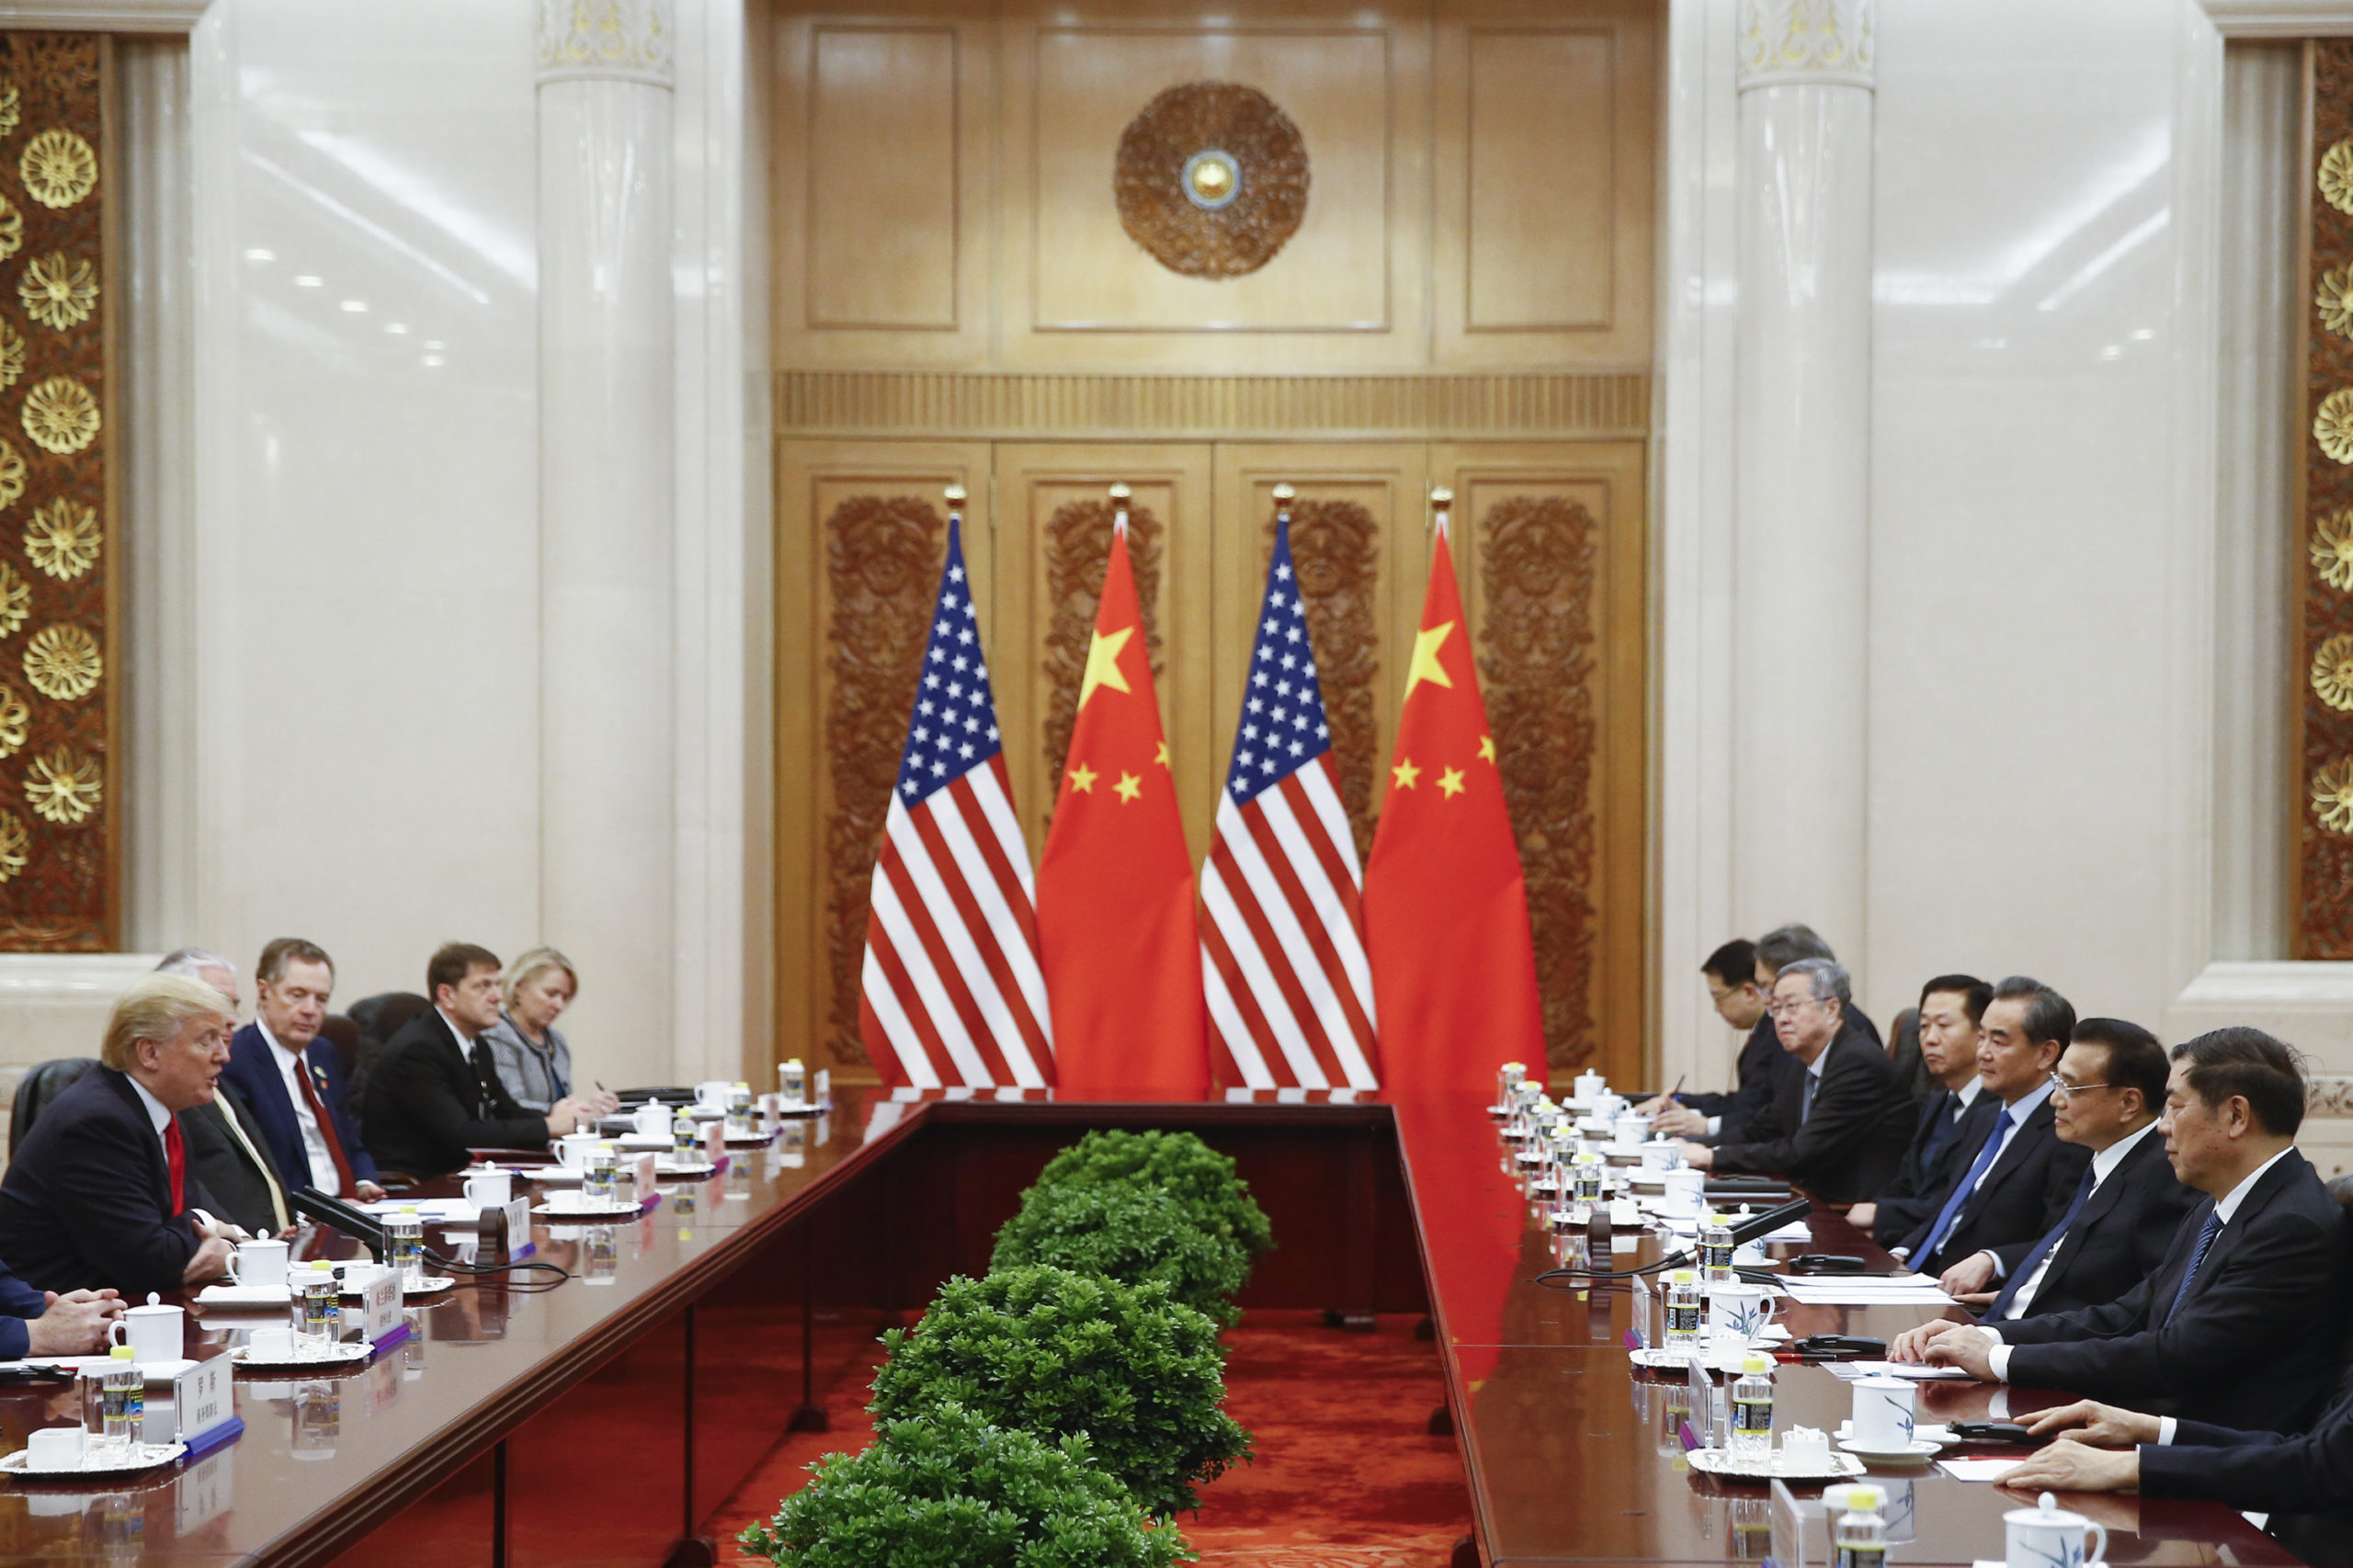 Chinese Premier Li Keqiang (2nd R) meets with US President Donald Trump (L) at the Great Hall of the People in Beijing on November 9, 2017. Donald Trump and Xi Jinping put their professed friendship to the test on November 9 as the least popular US president in decades and the newly empowered Chinese leader met for tough talks on trade and North Korea. / AFP PHOTO / POOL / THOMAS PETER (Photo credit should read THOMAS PETER/AFP via Getty Images)